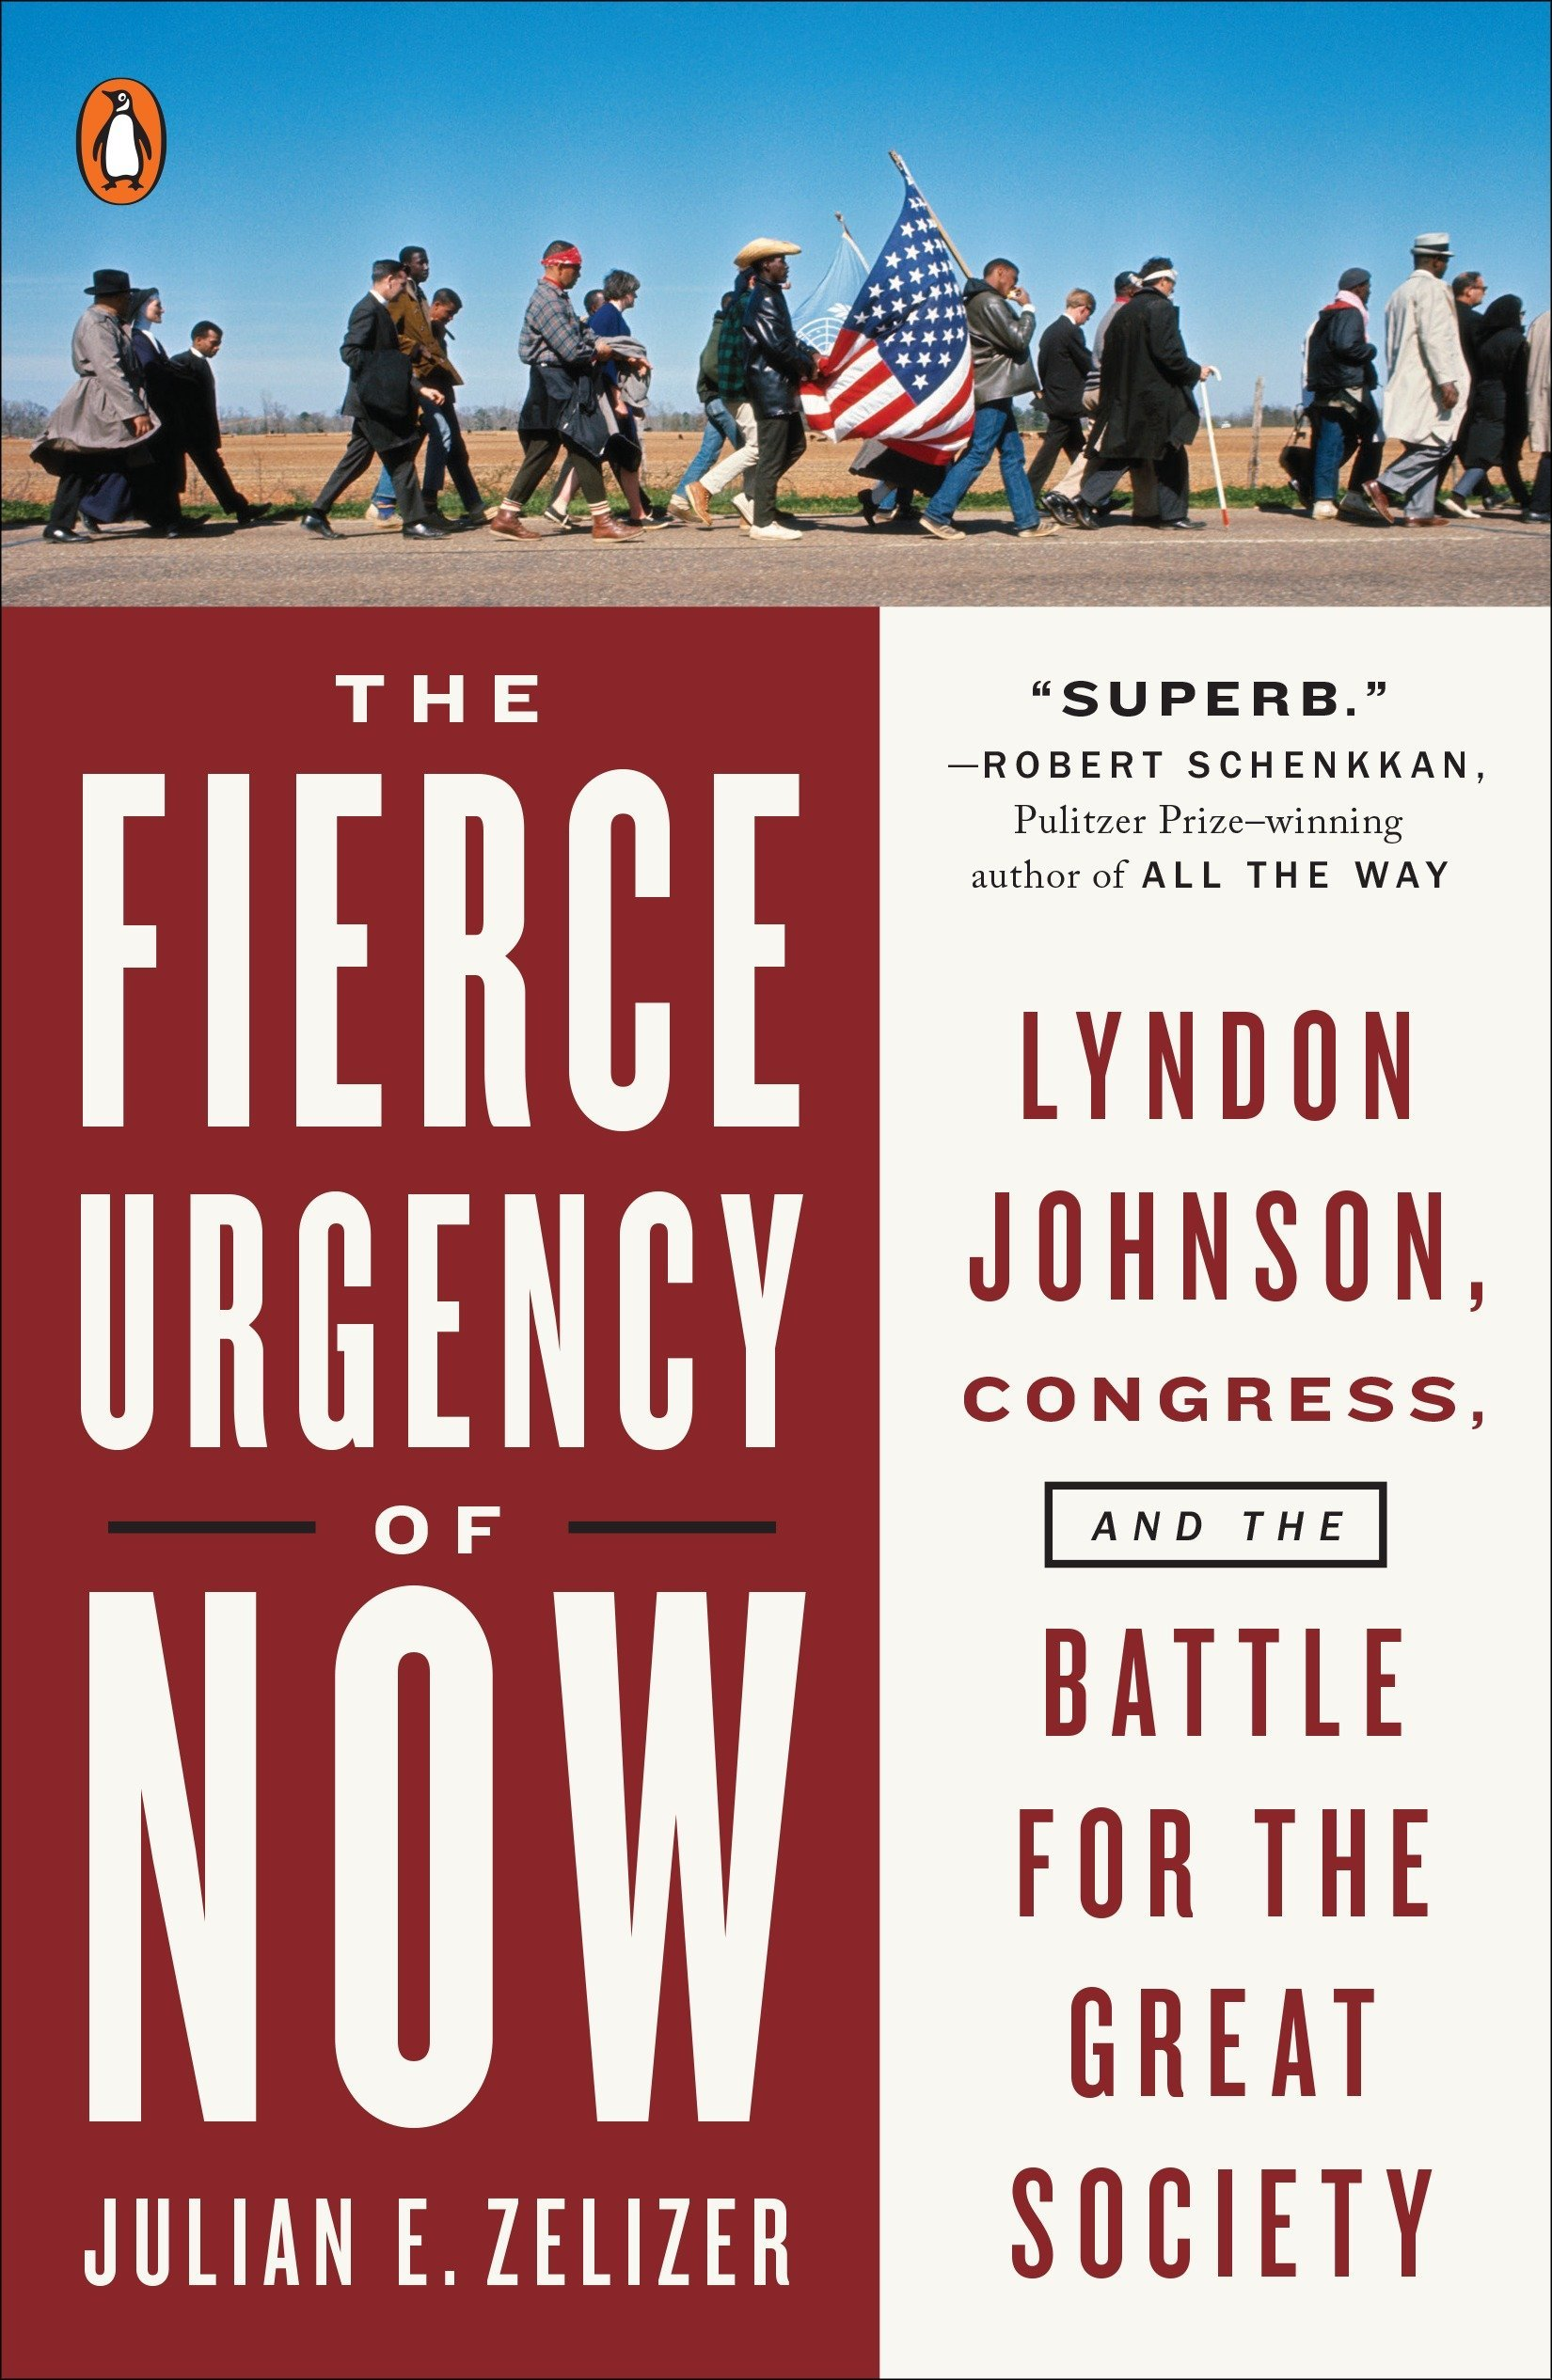 Download The Fierce Urgency of Now: Lyndon Johnson, Congress, and the Battle for the Great Society pdf epub